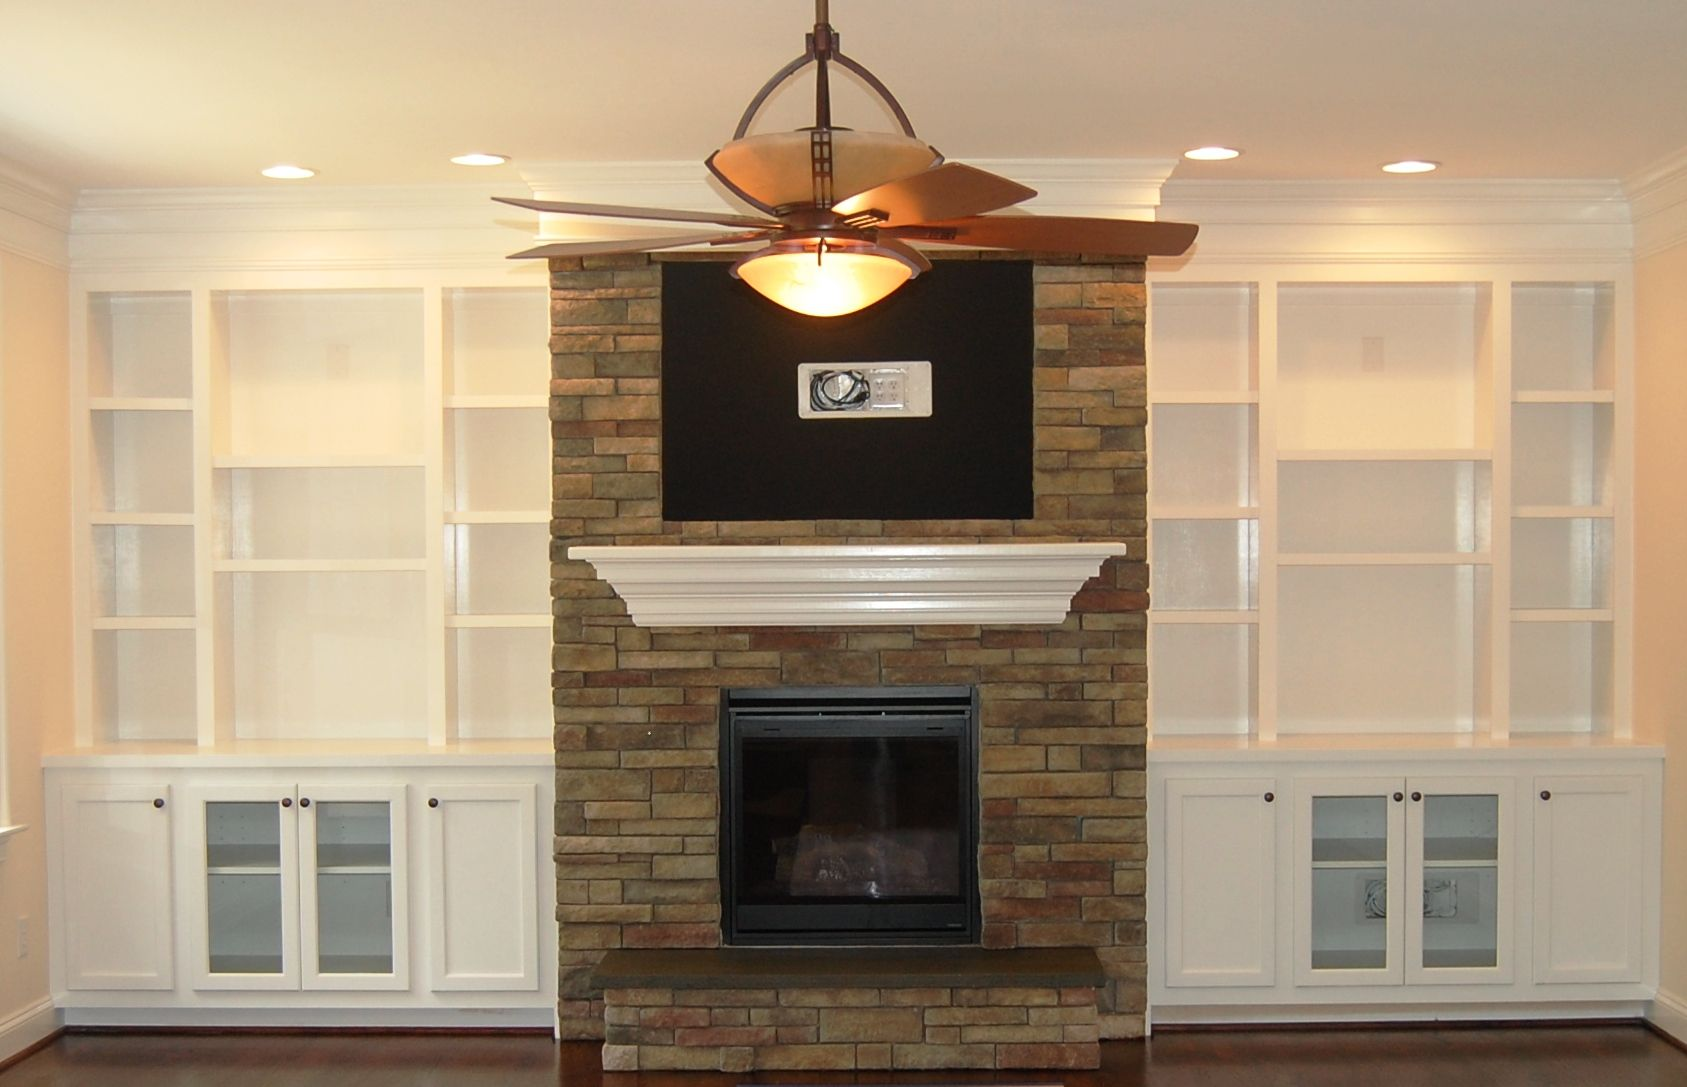 Built In Bookshelves Around Fireplace Shelves Around Fireplace On Pinterest | Bookshelves Around